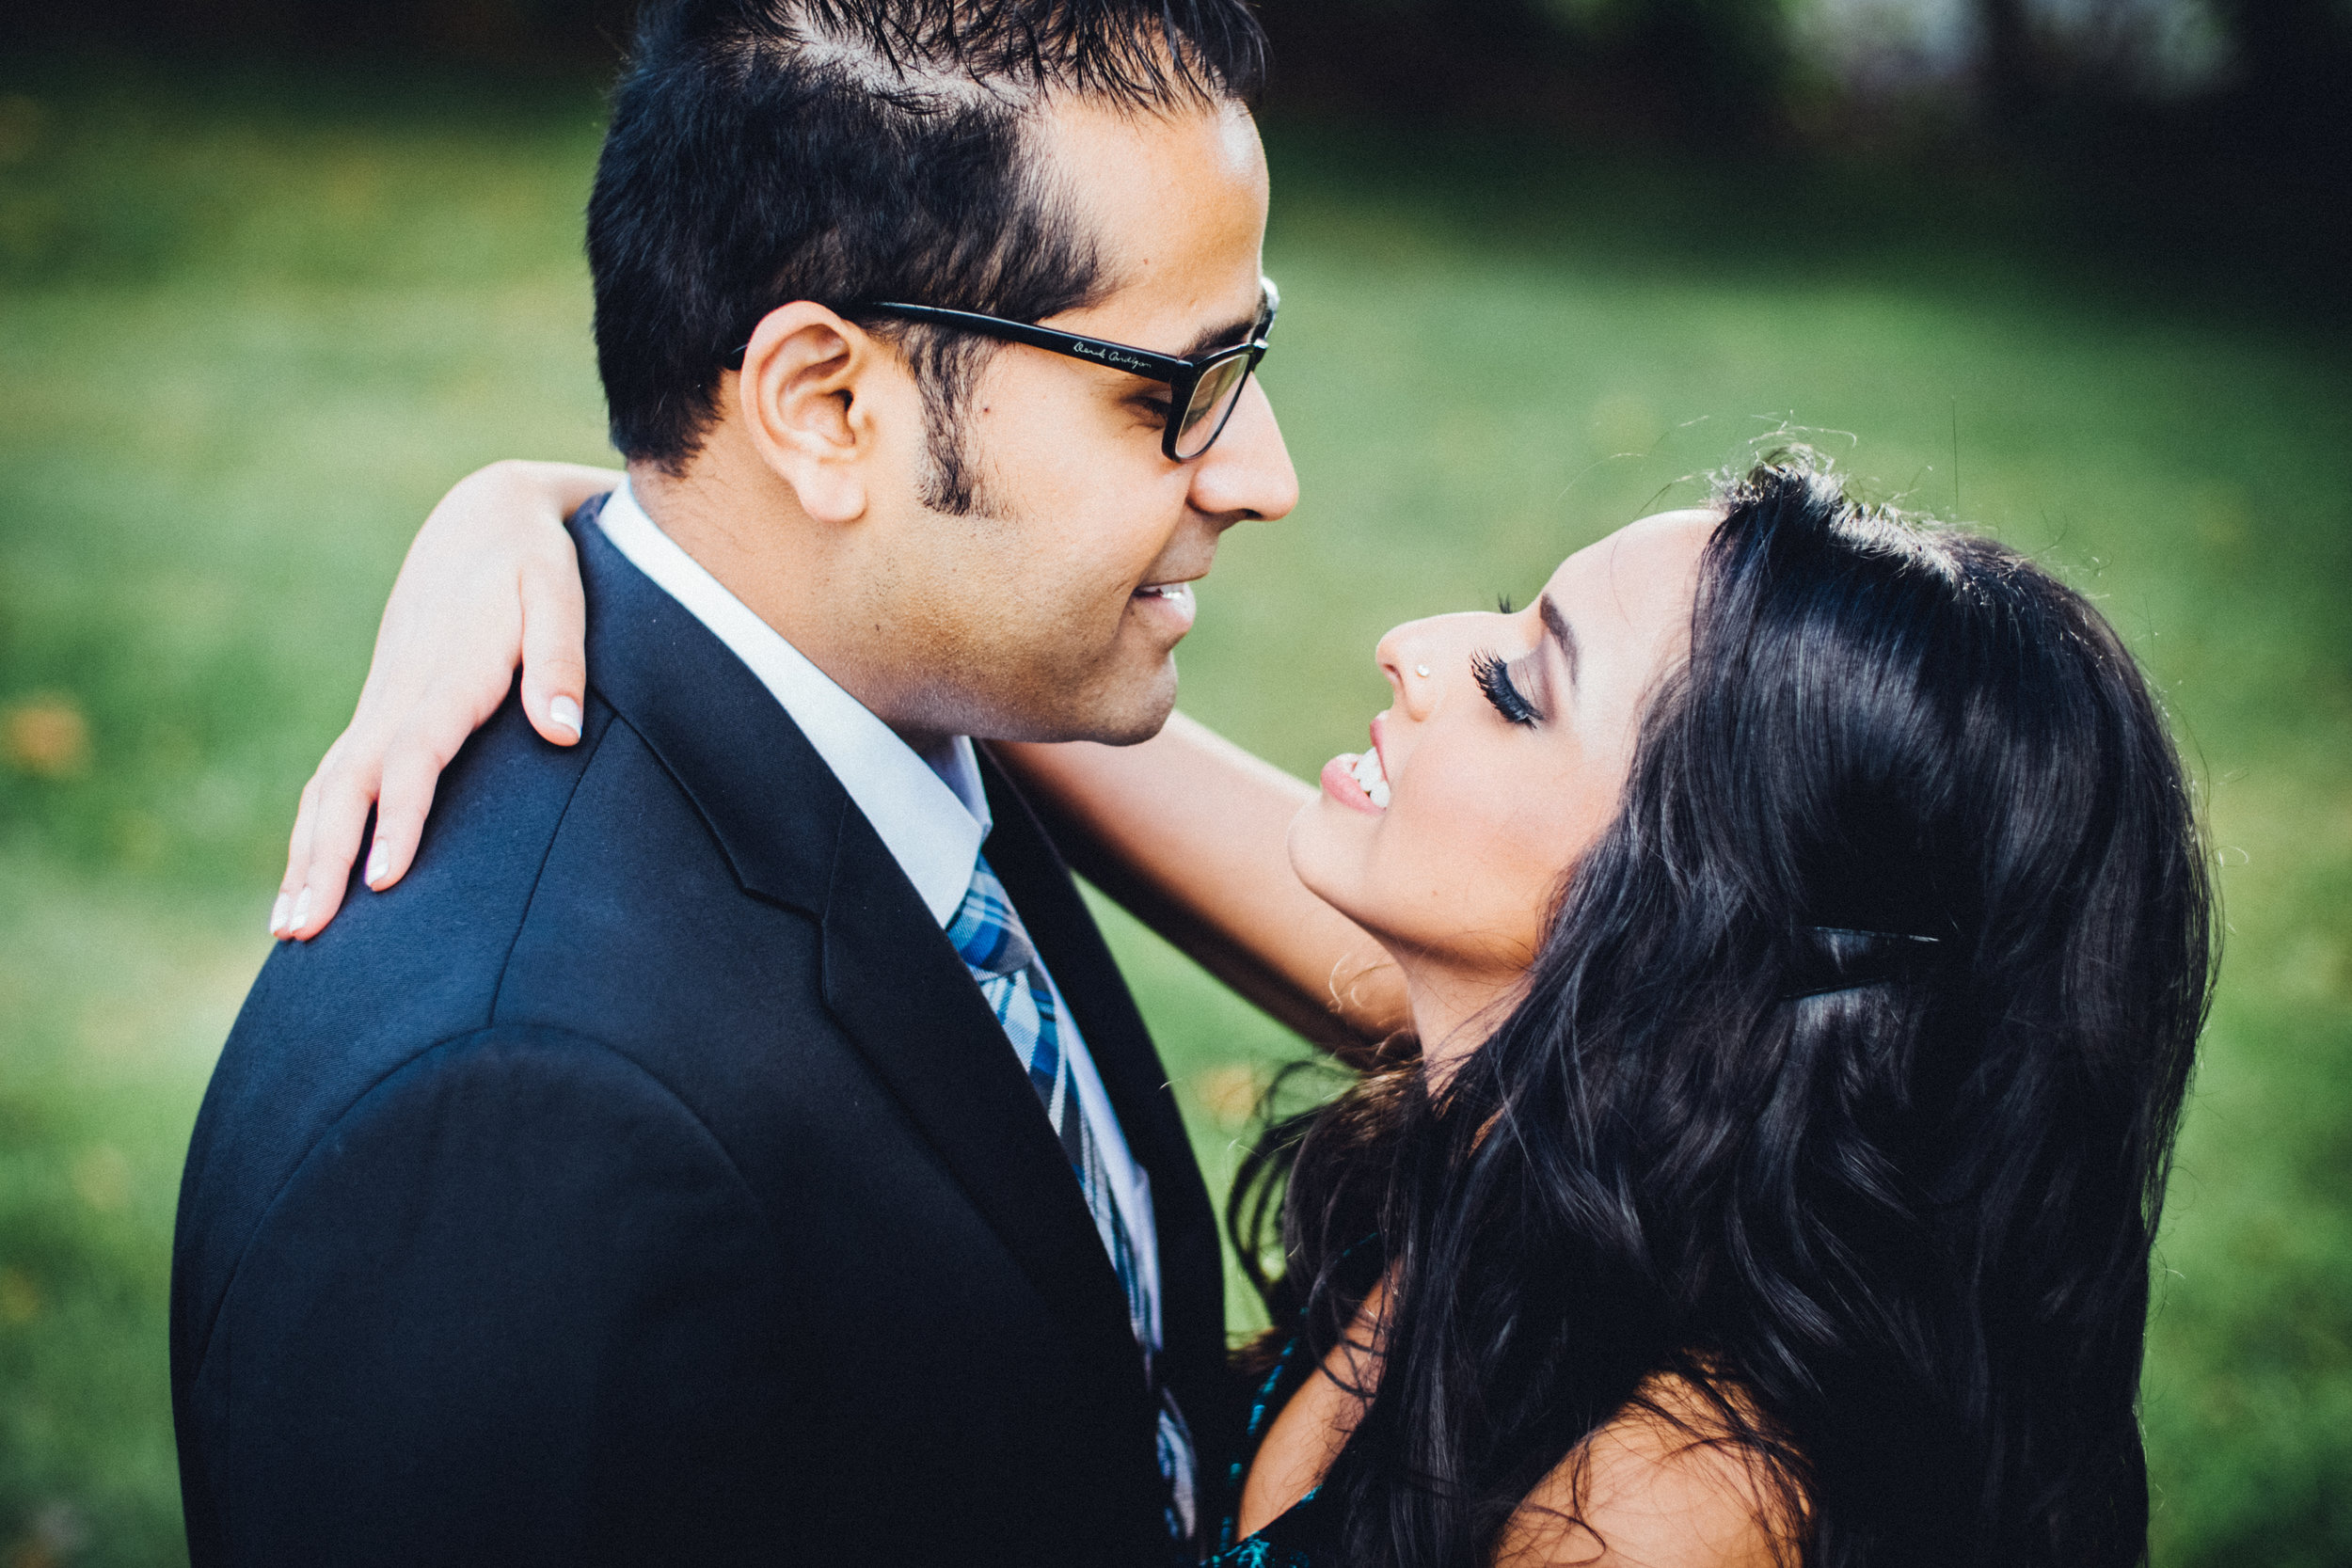 Shadow-Shine-Pictures-West-Michigan-Grand-Rapids-Corporate-Wedding-Videographers-Videographer-Videography-Photographer-Photographers-Photography-011